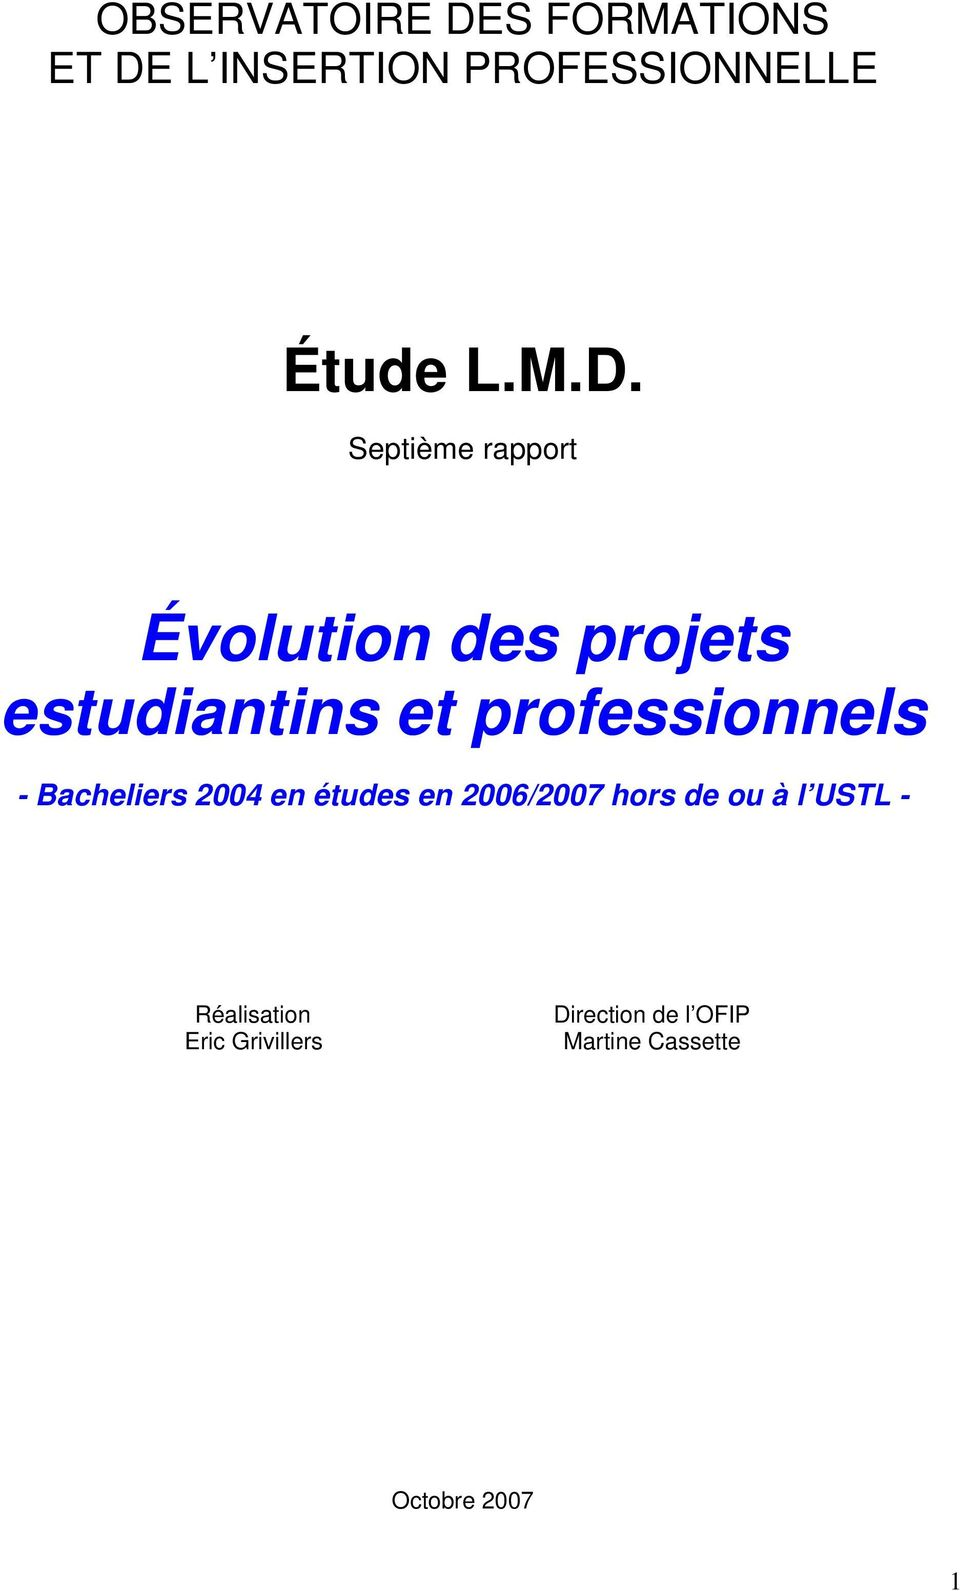 L INSERTION PROFESSIONNELLE Étude L.M.D.